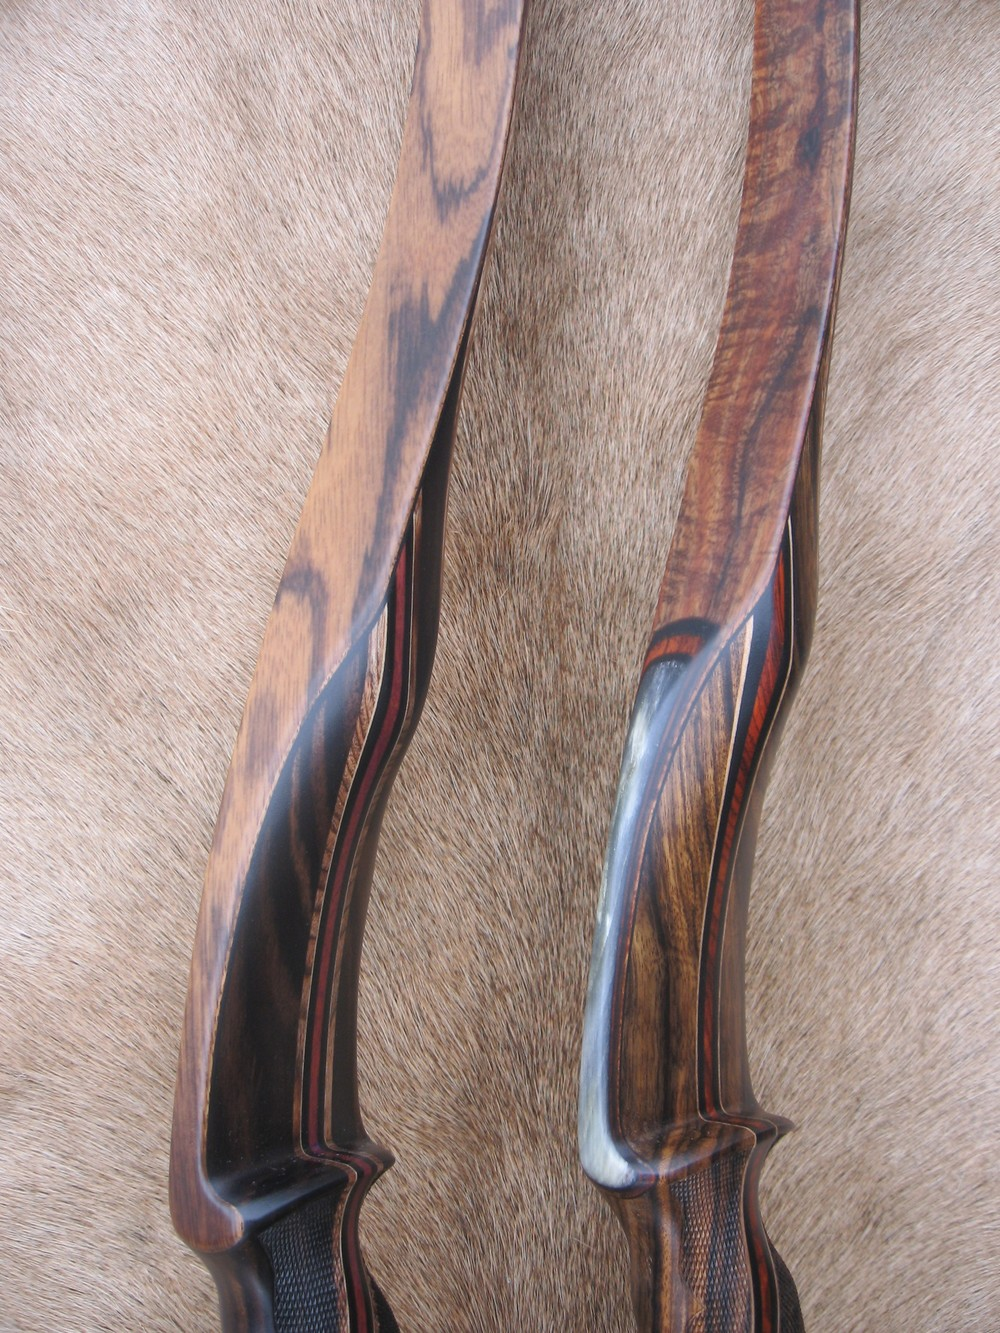 Left to Right  Macassar Handle/Zebrawood Limbs  Shedua Handle/Koa Limbs